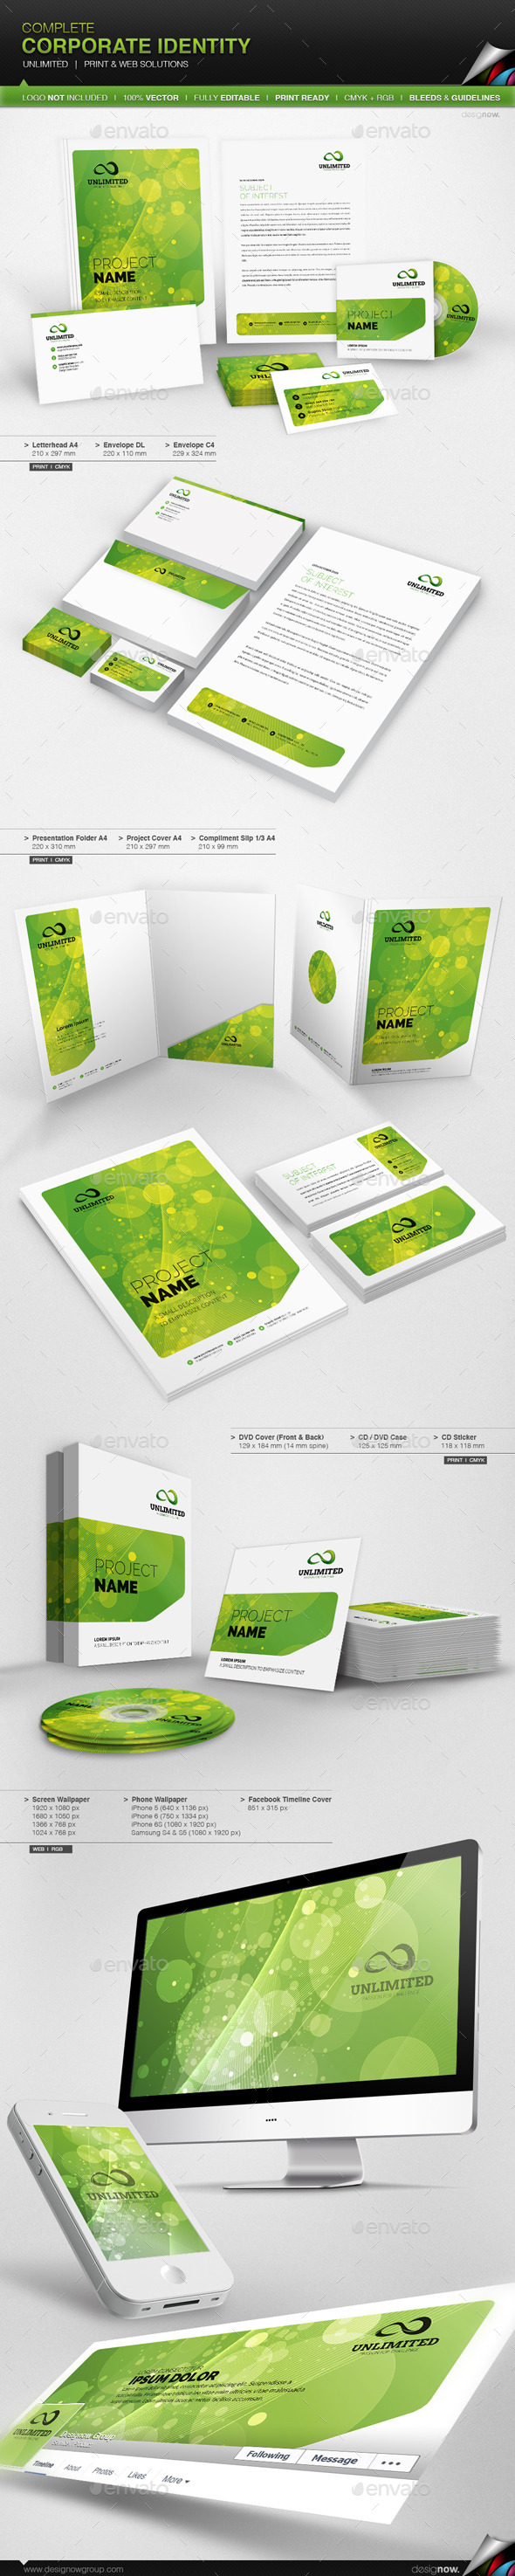 GraphicRiver Corporate Identity Unlimited 9121327